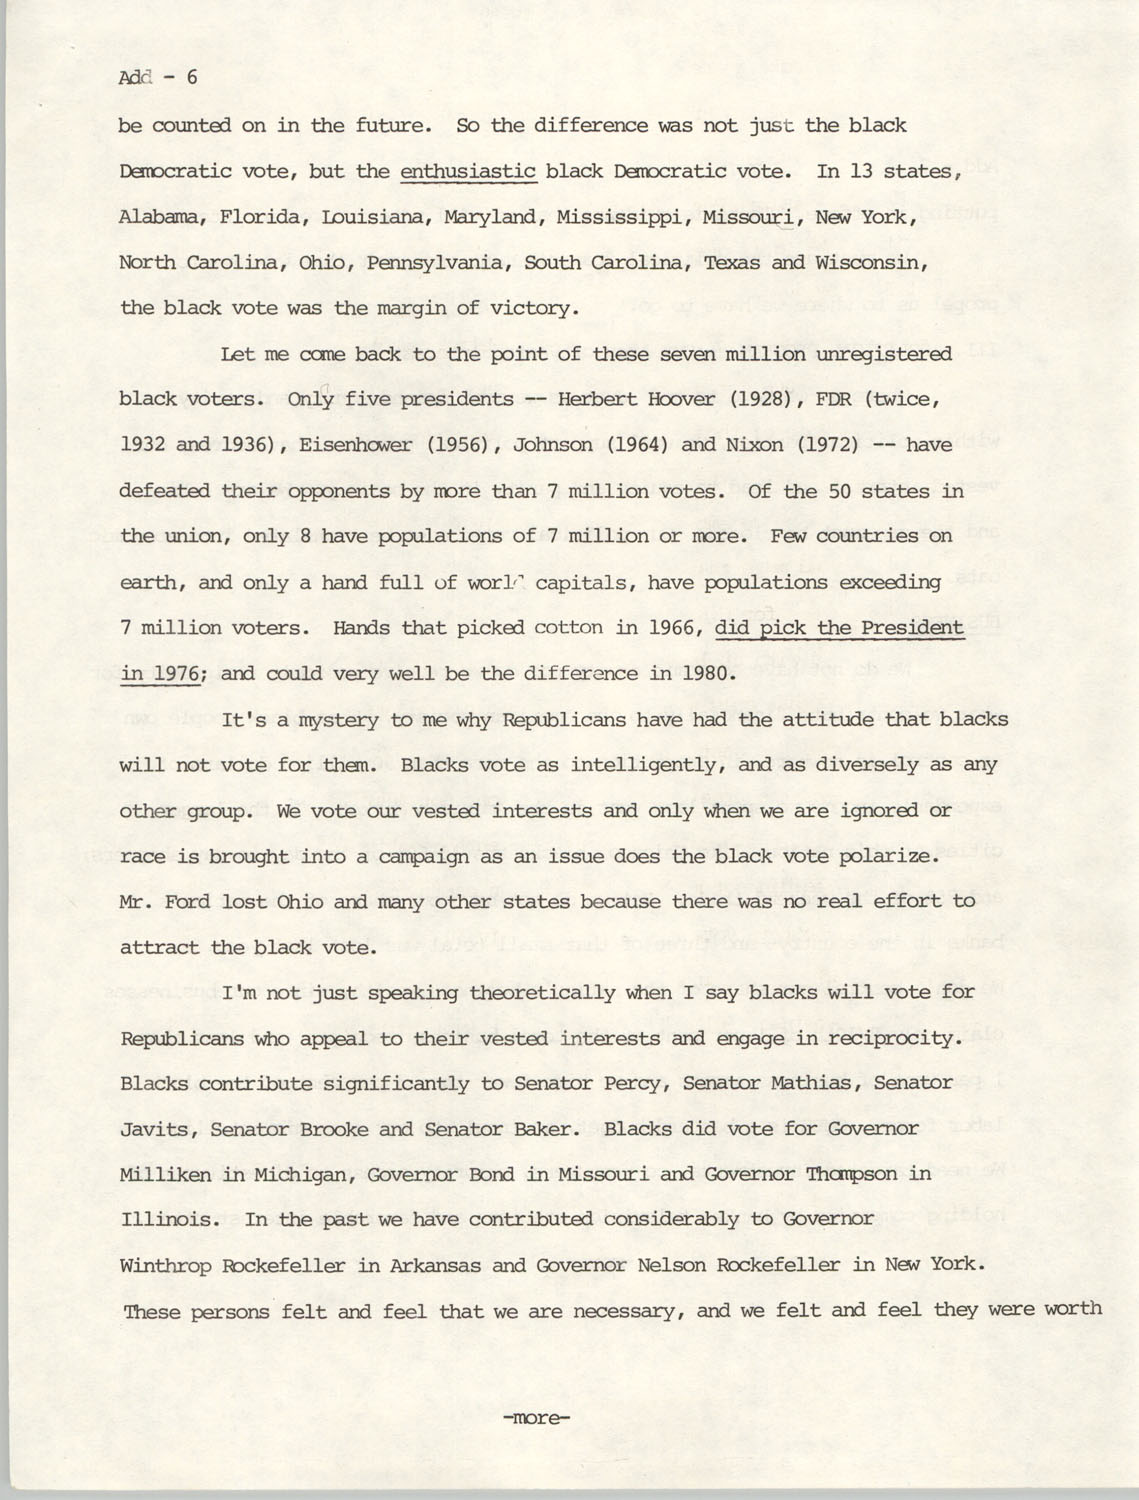 Speech Before the Republican National Committee, Page 6